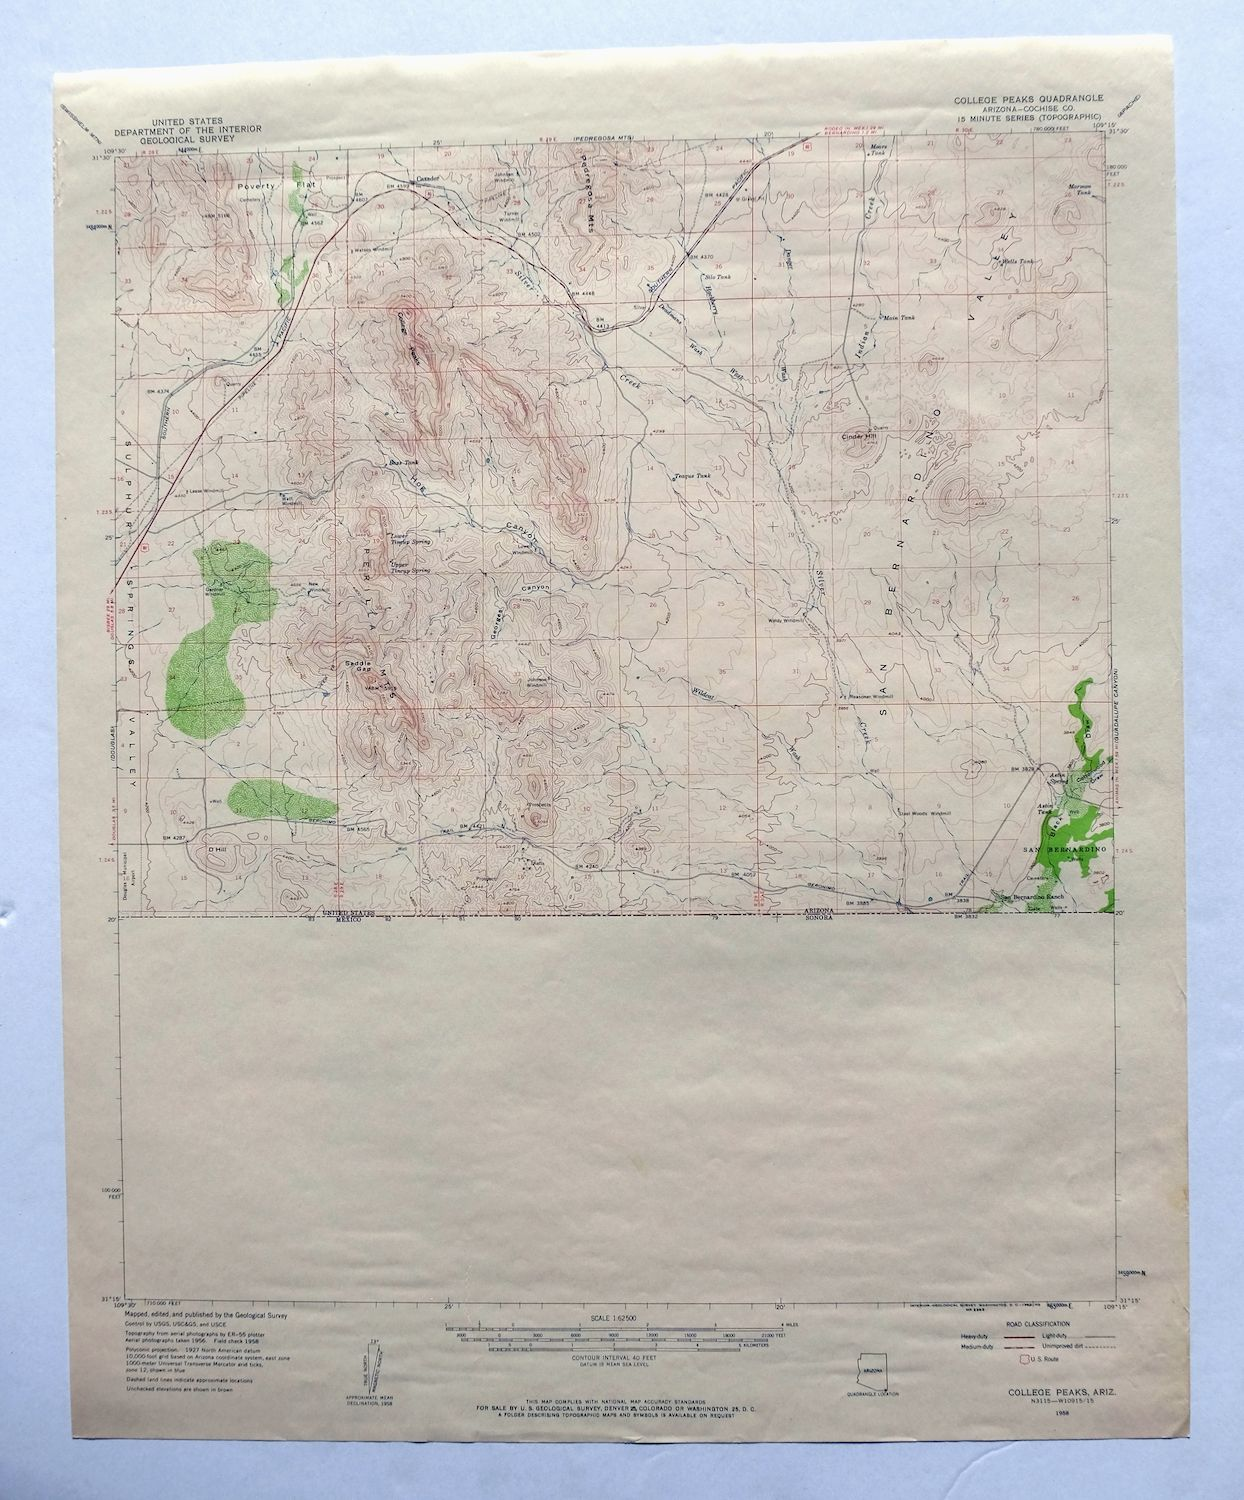 Usgs Maps For Sale. Cornell University Maps, Geology Maps ...